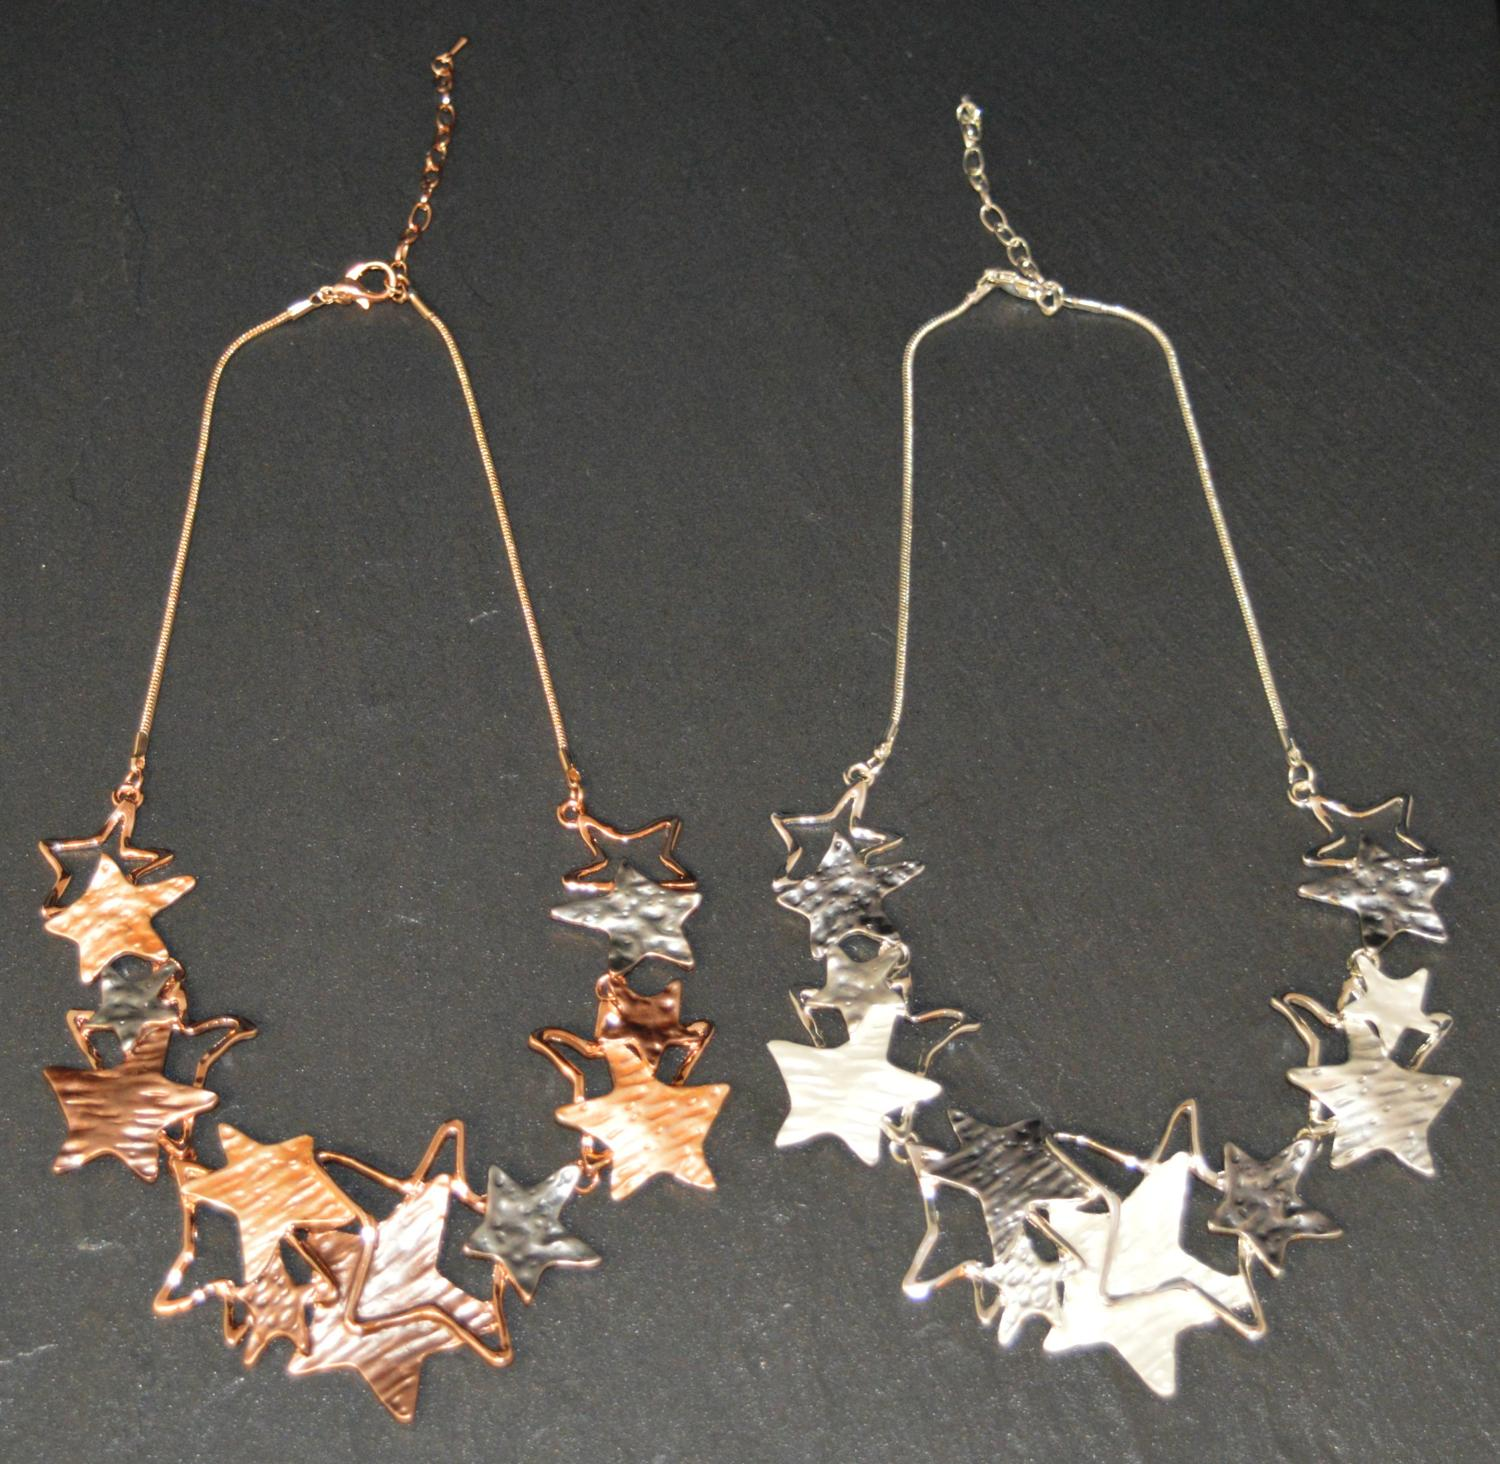 Matt and Polished Star Necklace